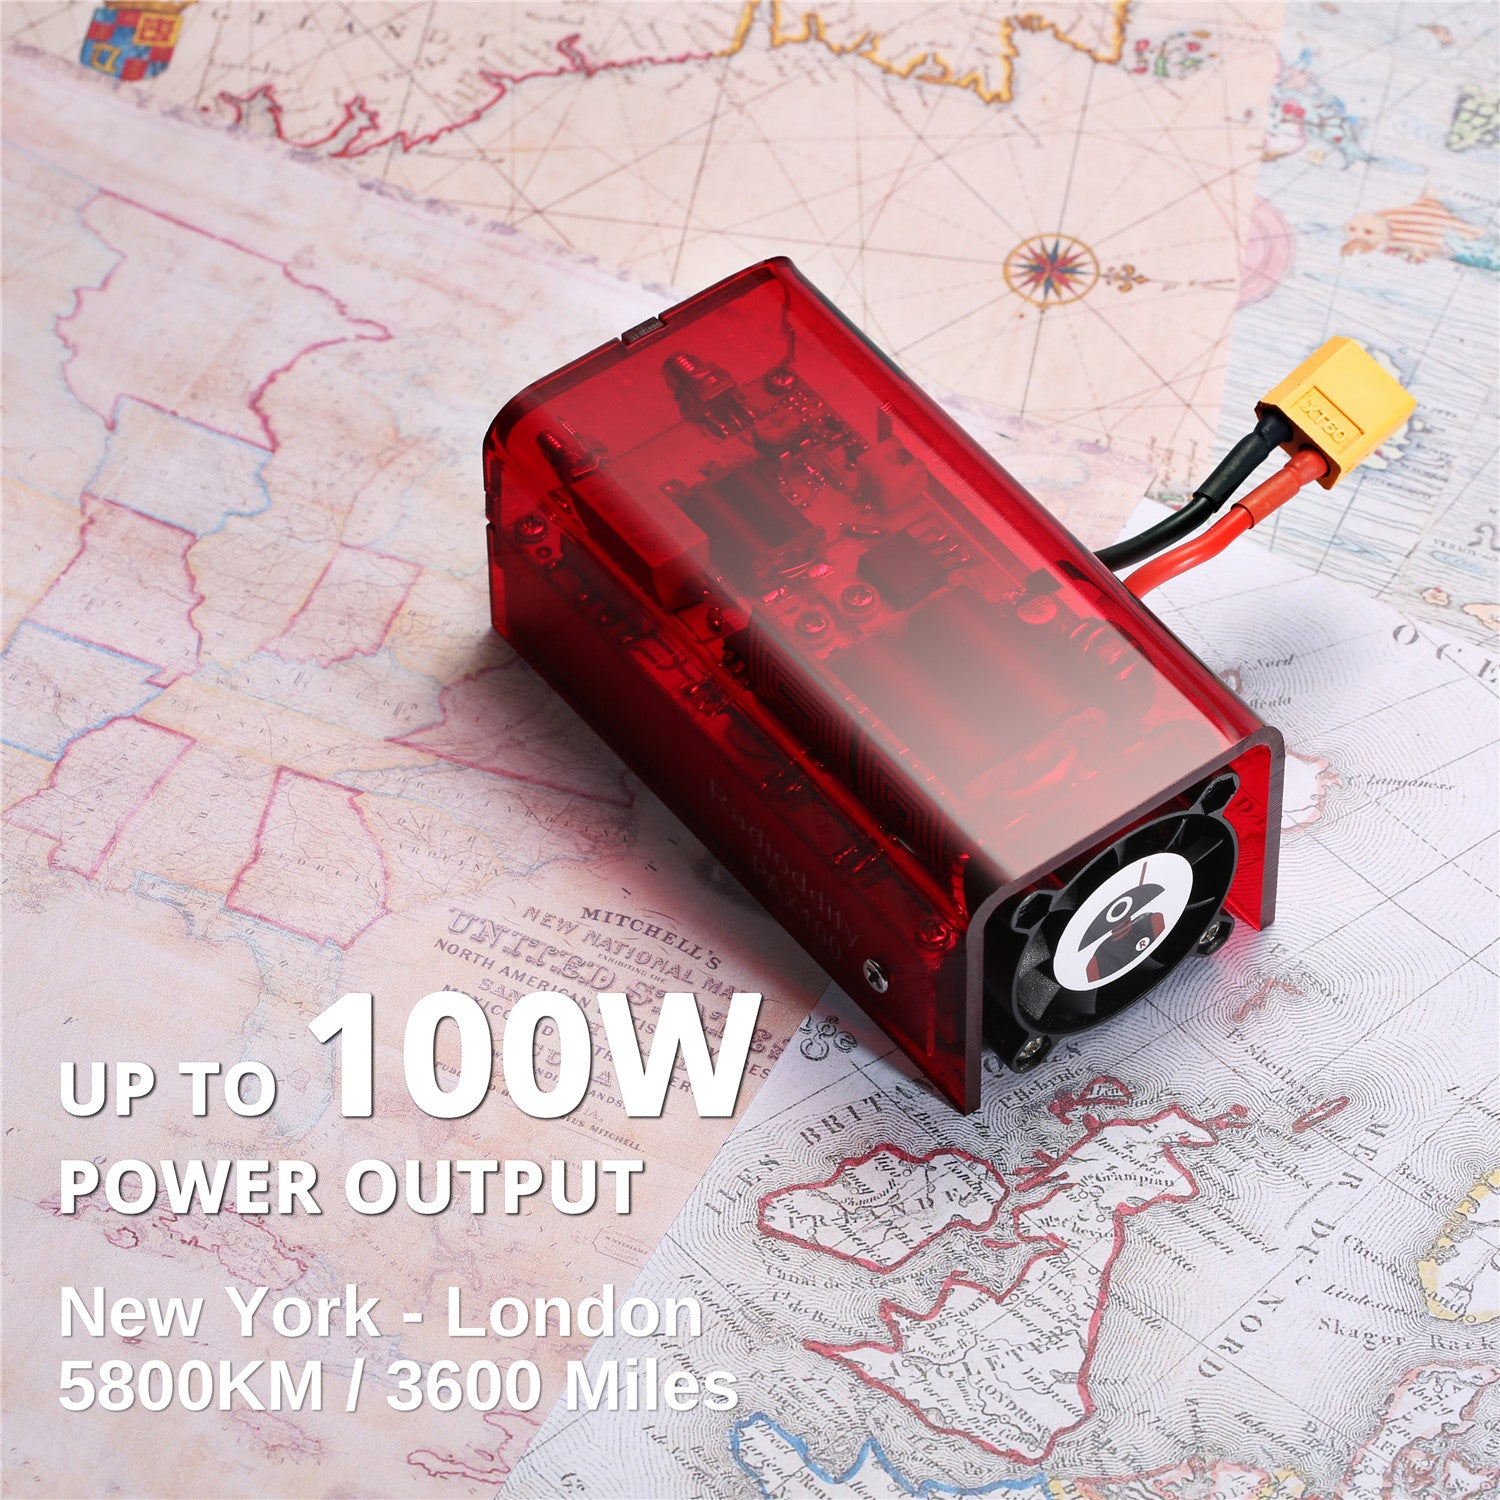 Up to 100W Power Output